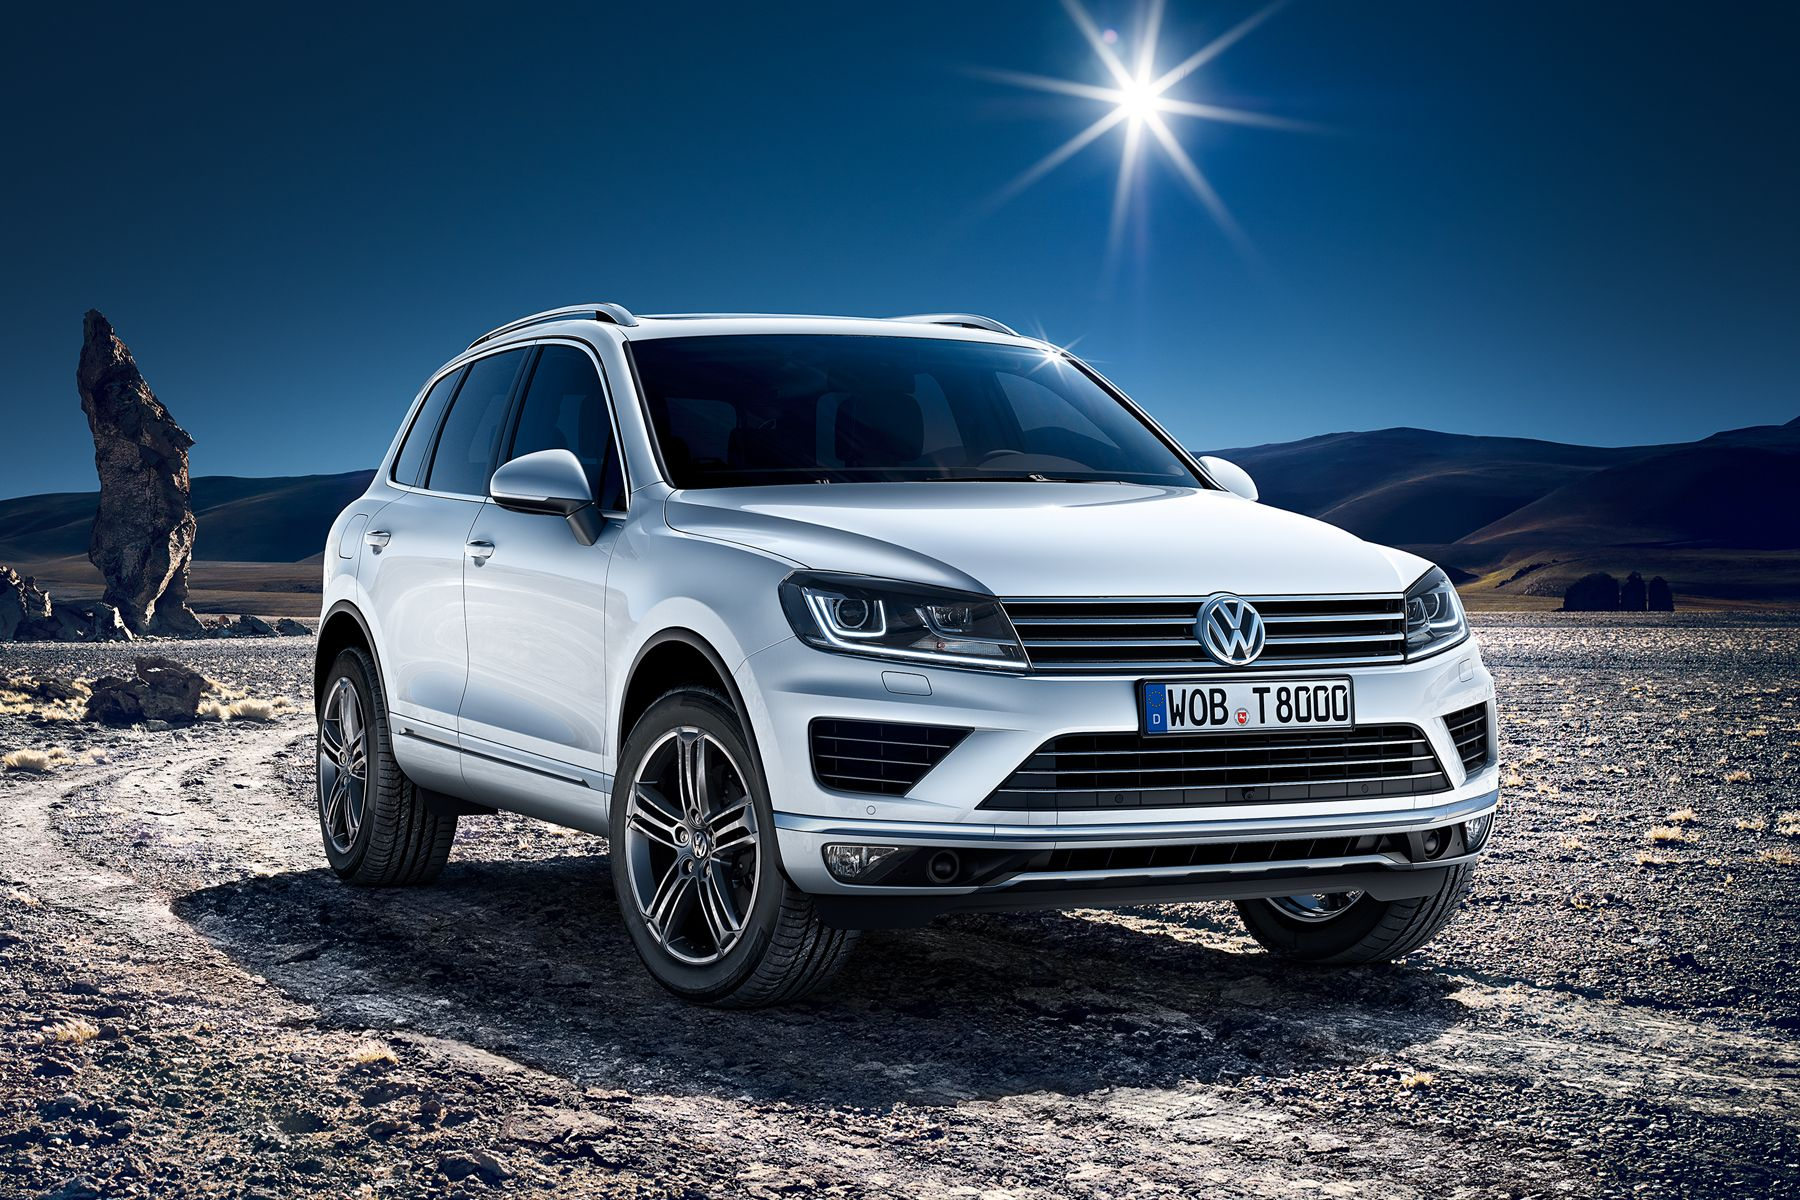 Very Cheap Car Insurance In New Jersey With Images Volkswagen